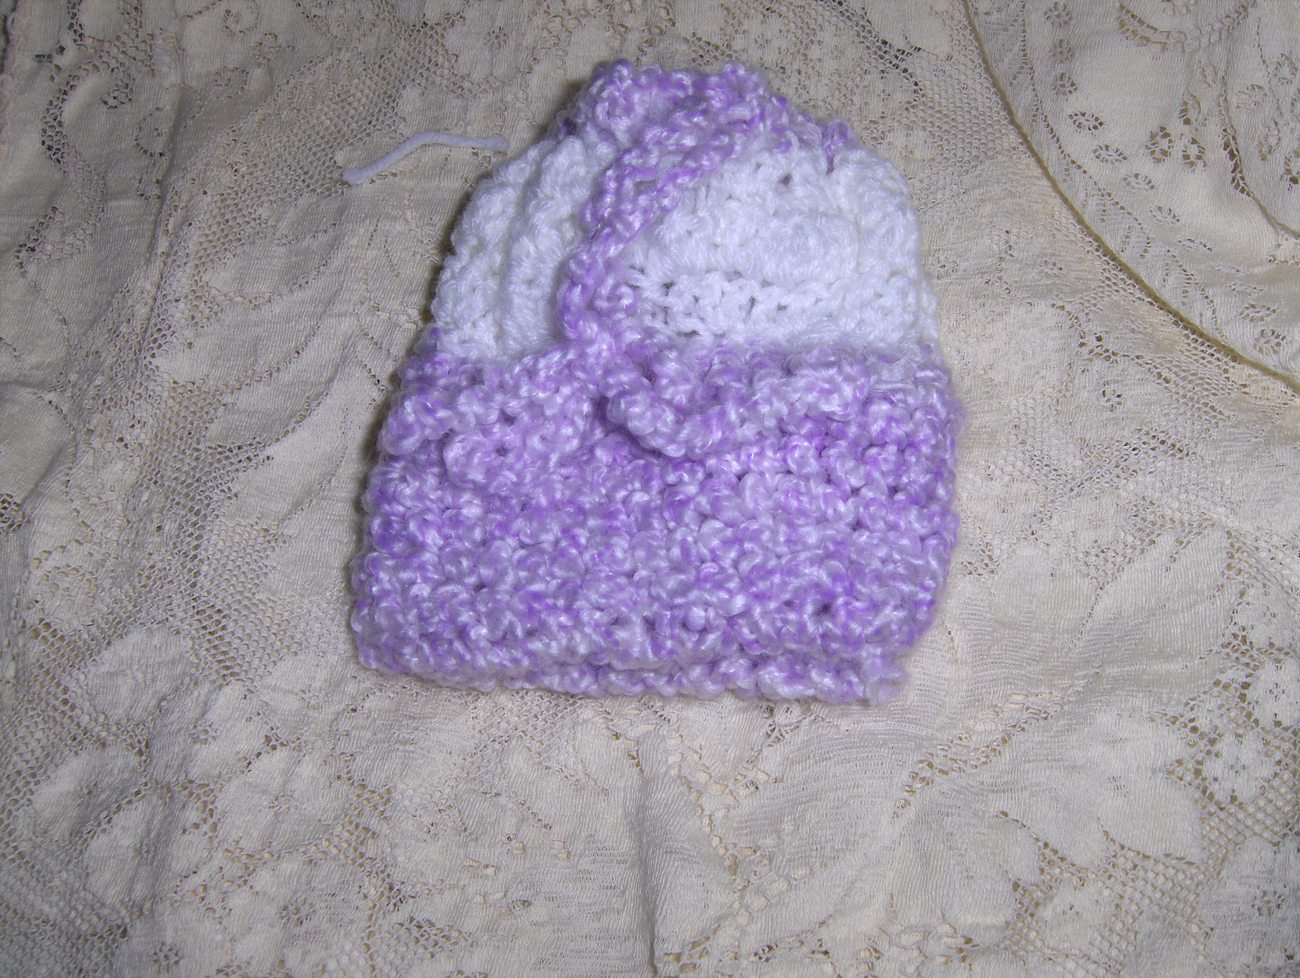 Handmade Purple/White Crocheted Childs Purse/Doll Bassinet